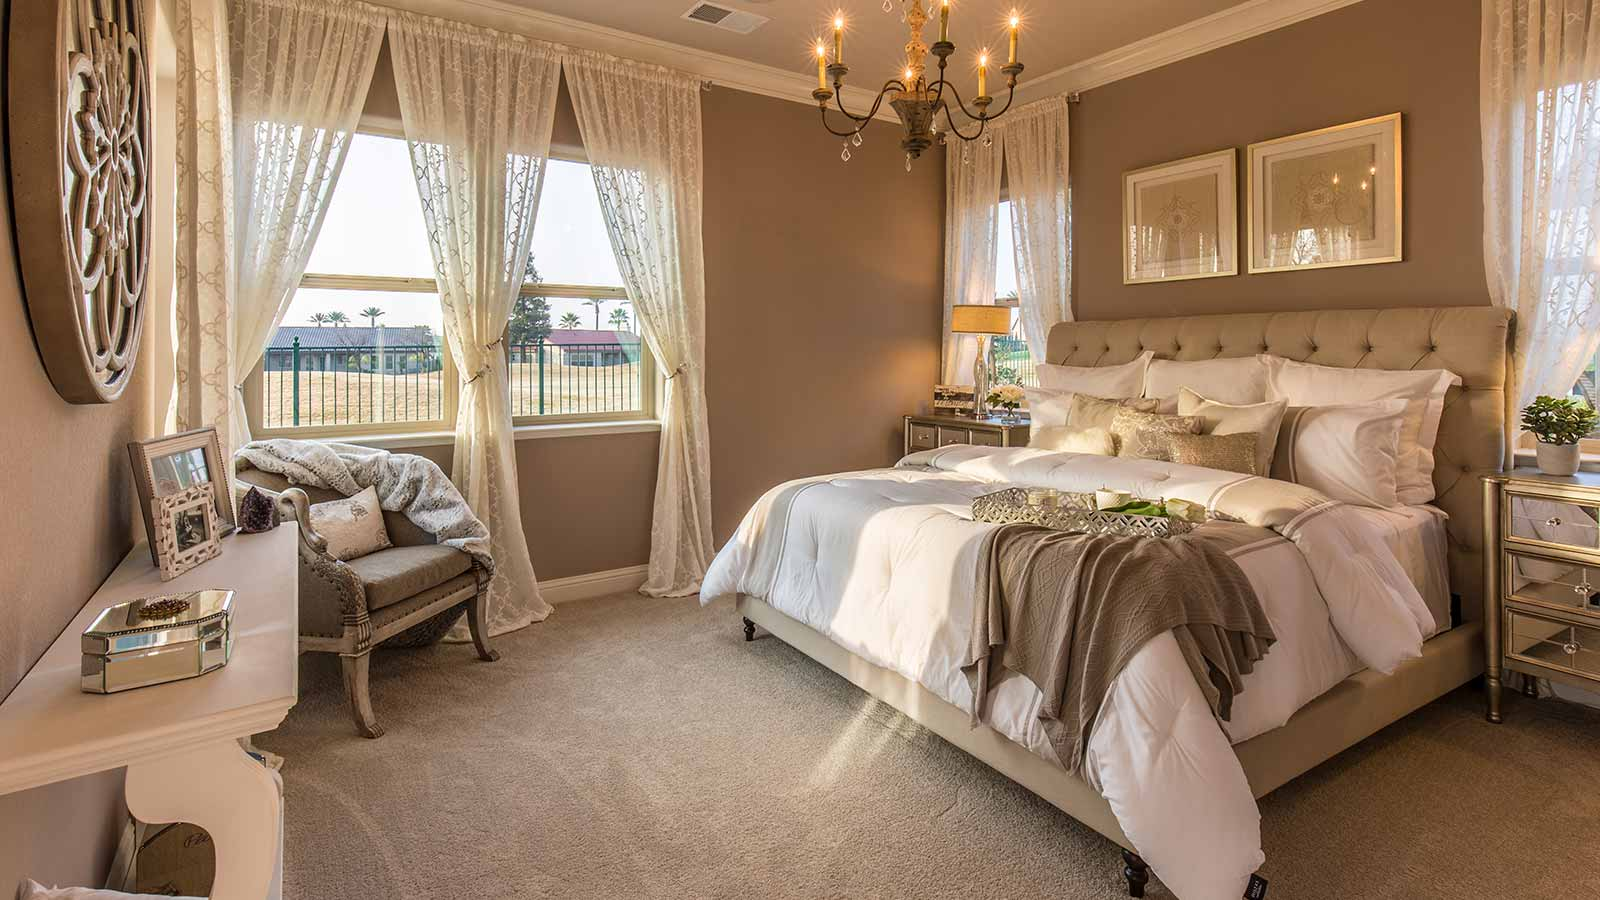 The muted neutral tones, combined with warm lighting, create a cozy atmosphere.